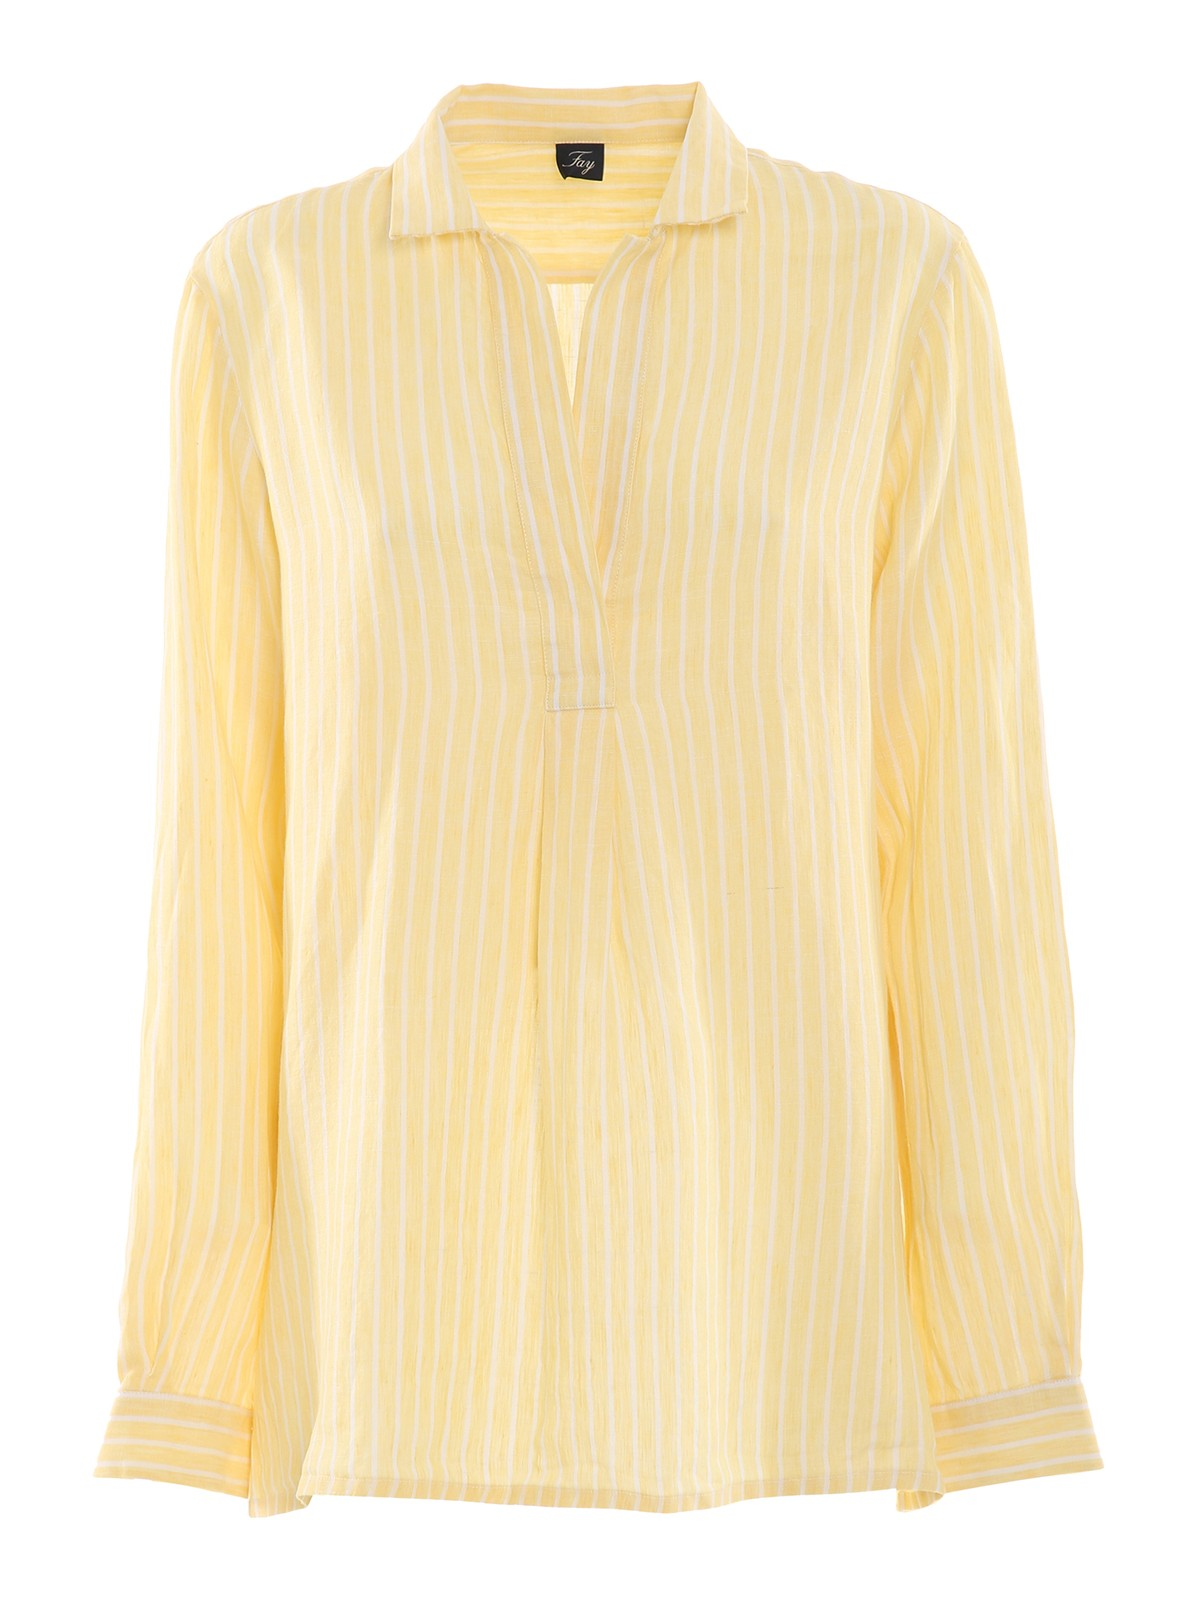 Fay STRIPED LINEN BLOUSE